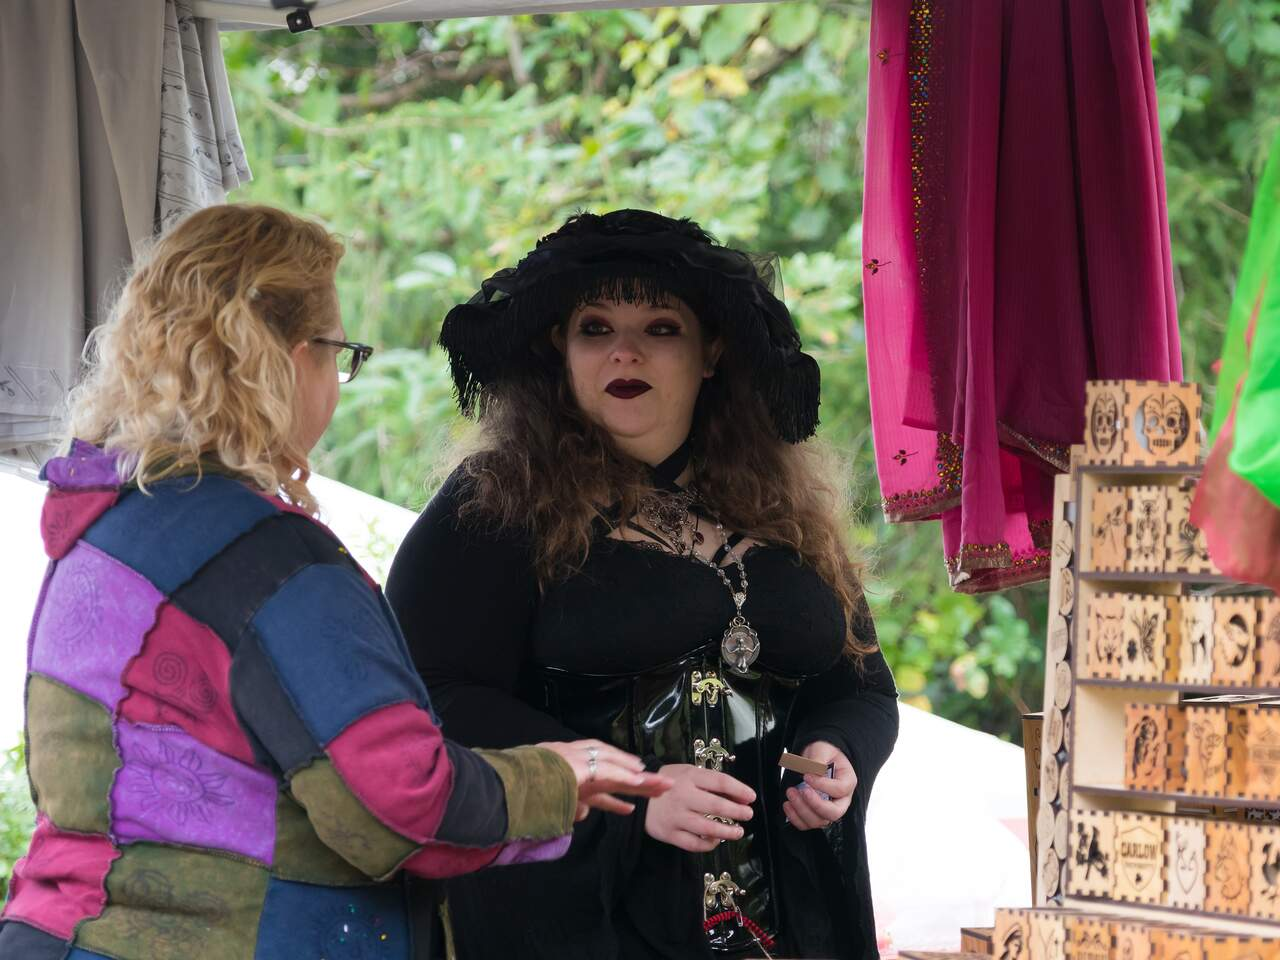 31st Annual Homewood Heritage Festival and Witches Gathering